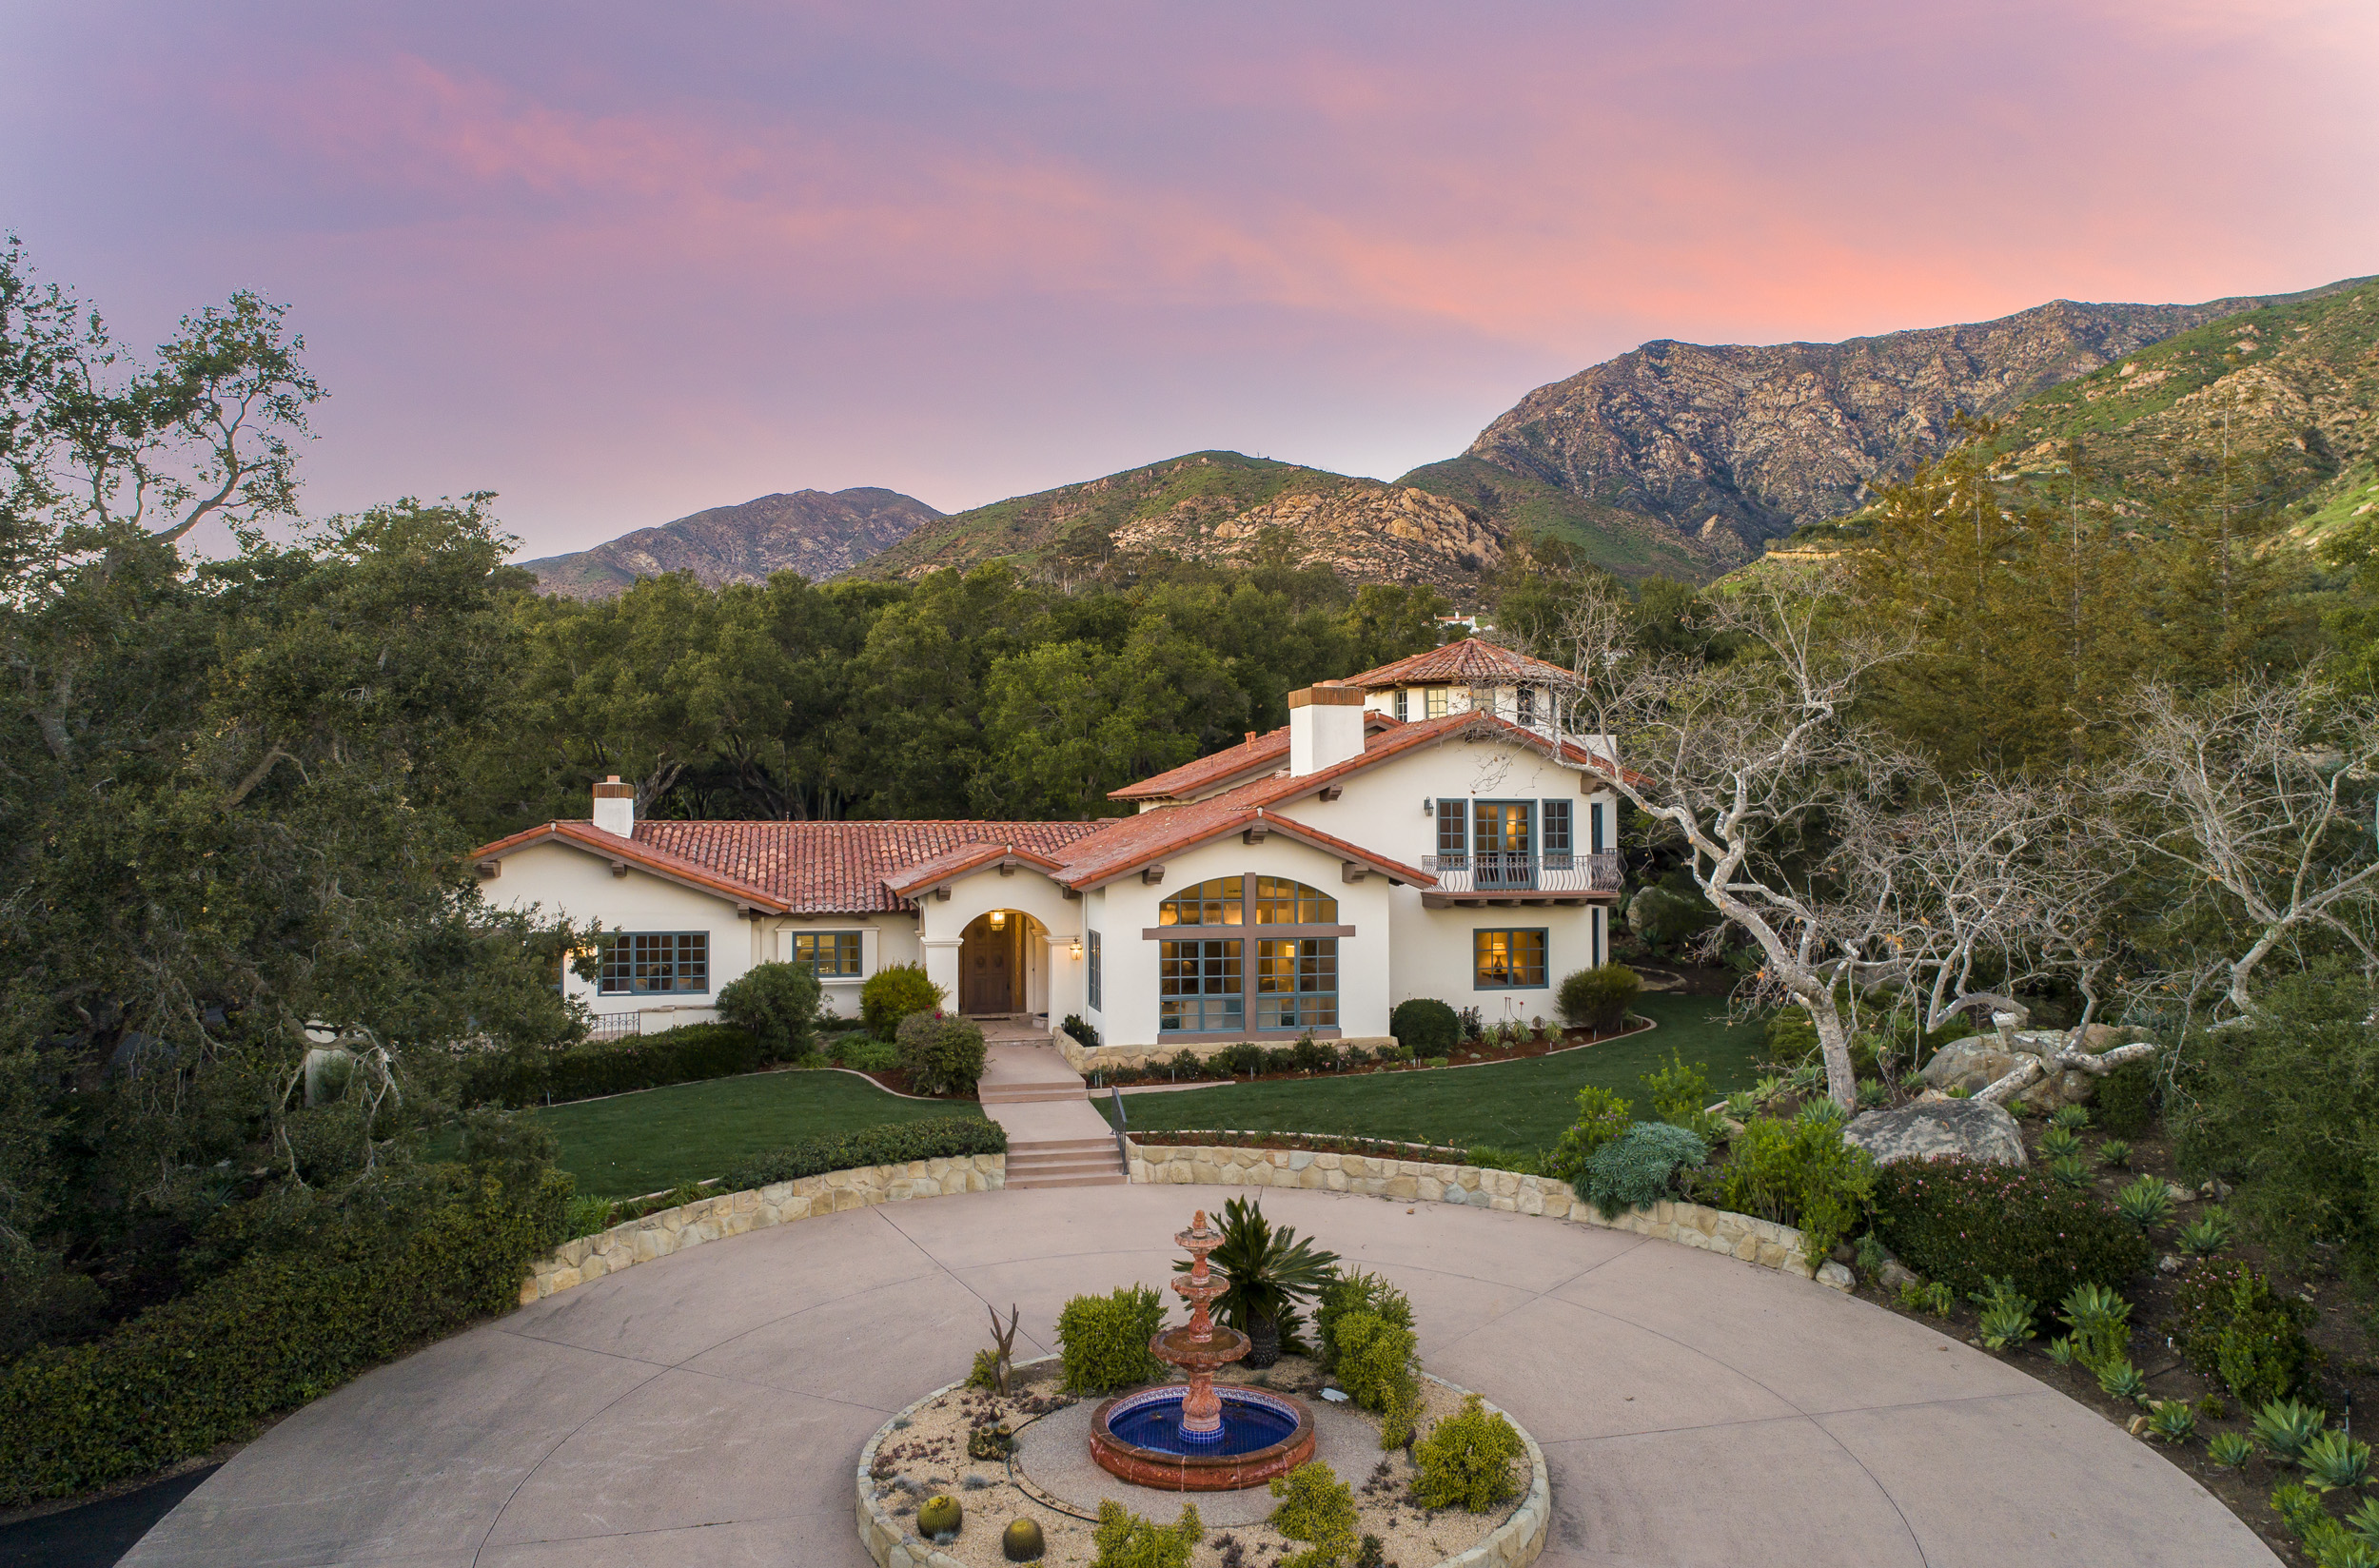 SOLD - 723 Lilac Dr - $2,800,000